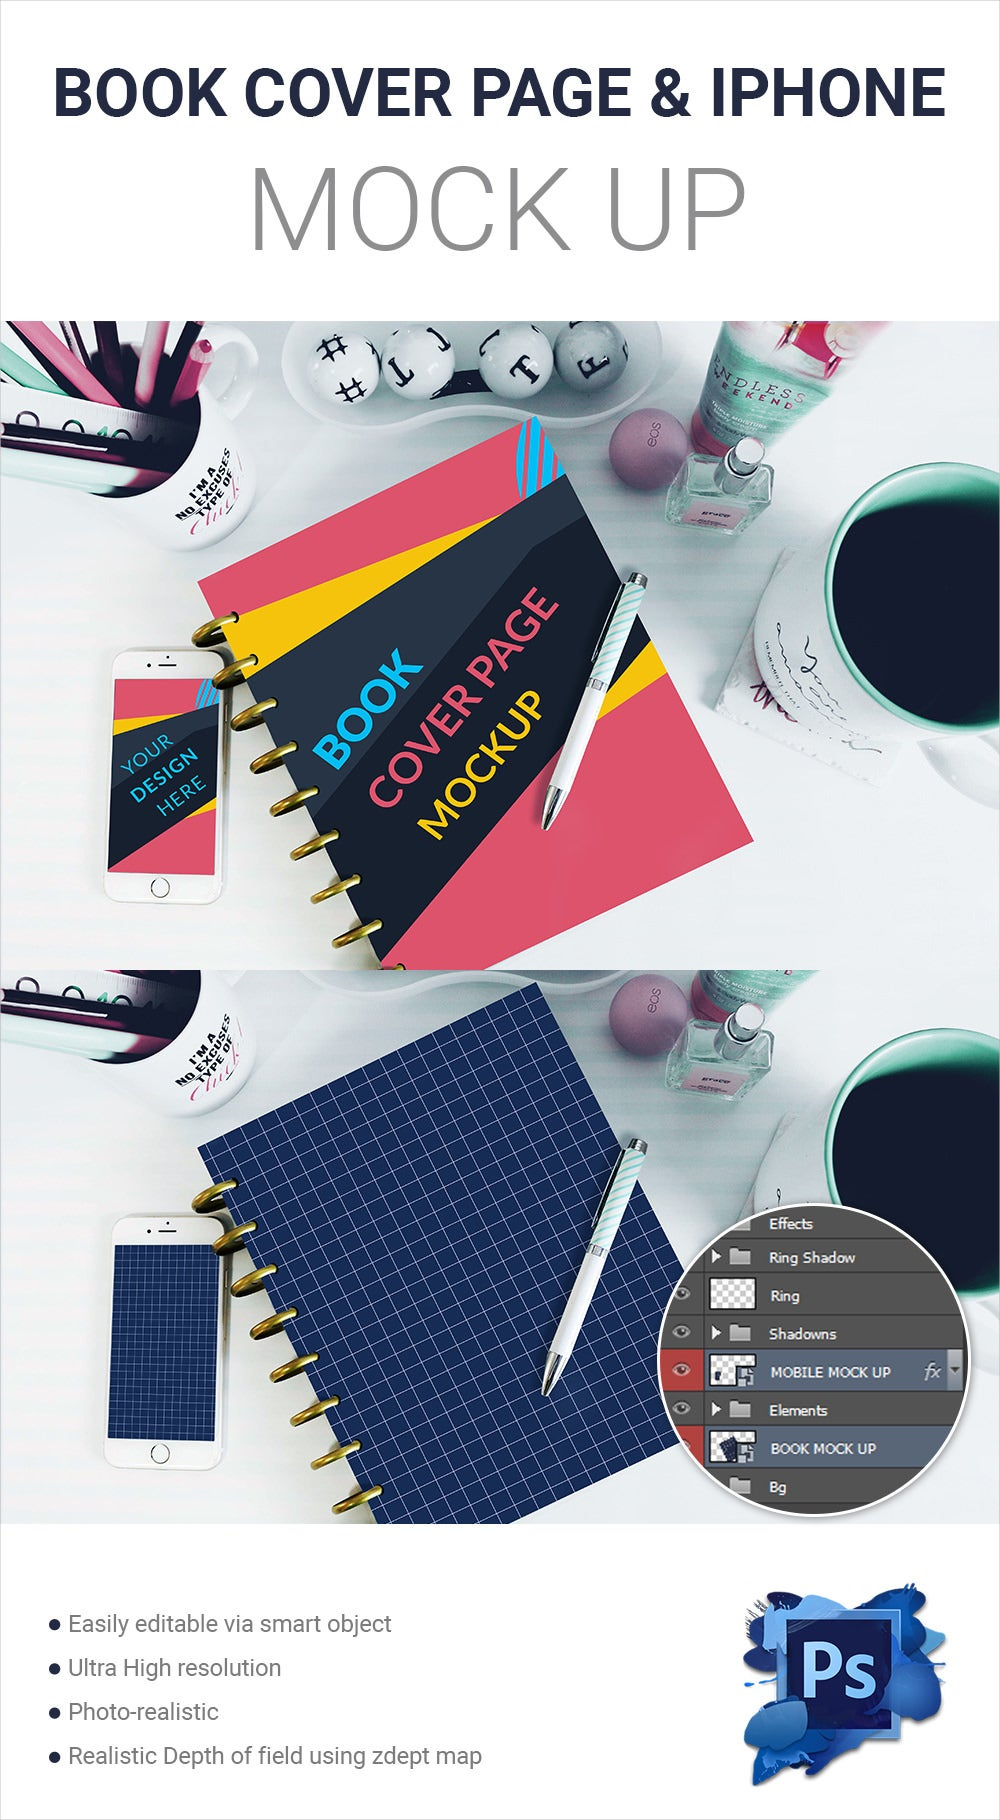 Book Cover Page & iPhone Mockup Free Download